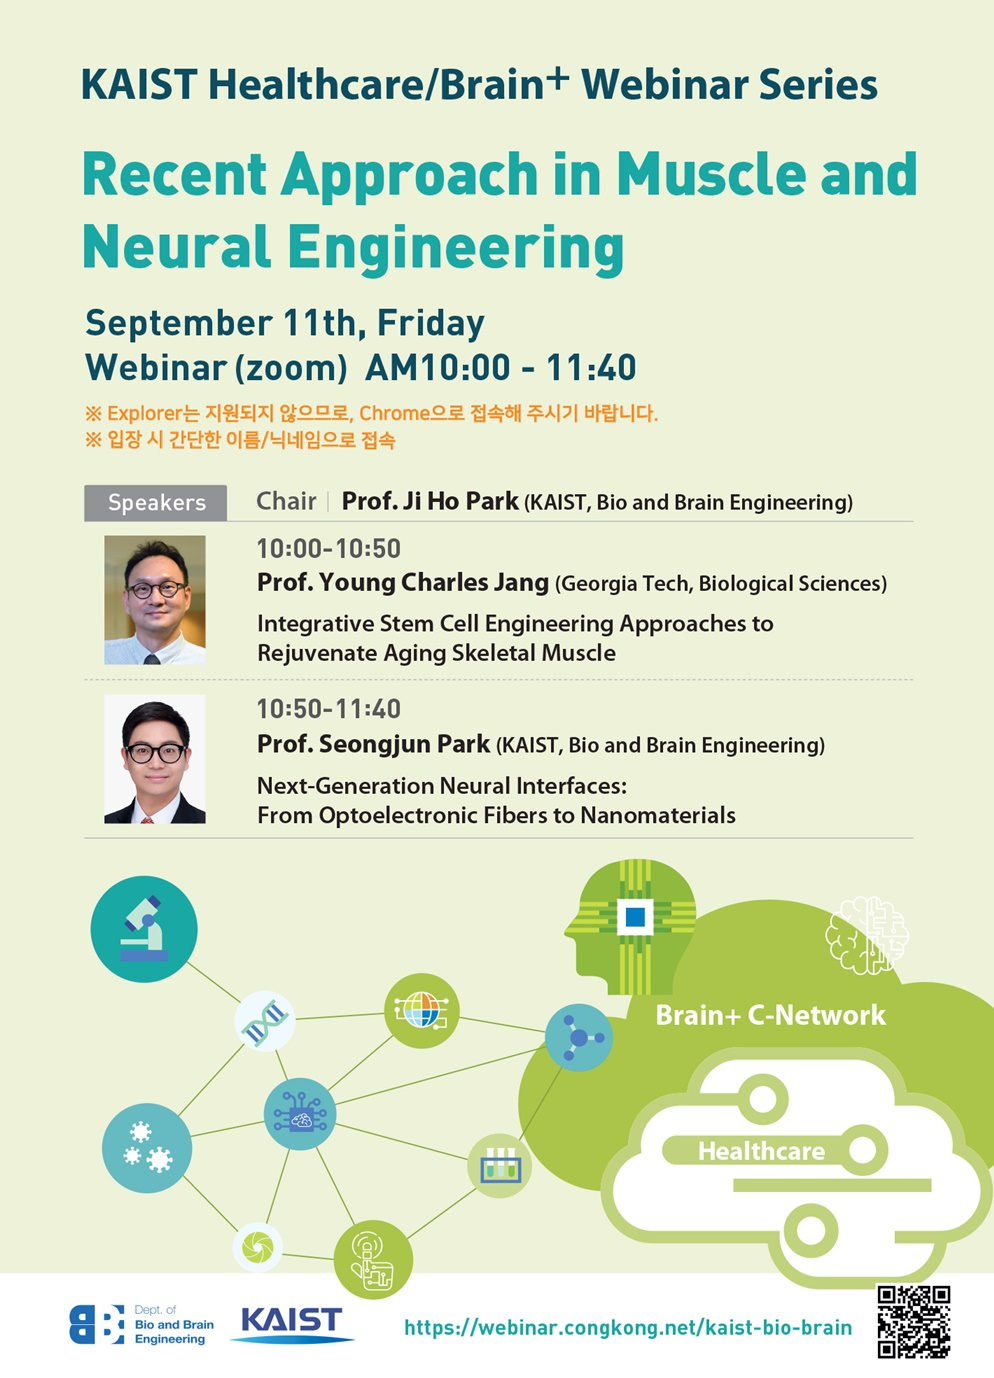 Recent Approach in Muscle and Neural Engineering, 2020.09.11.jpg